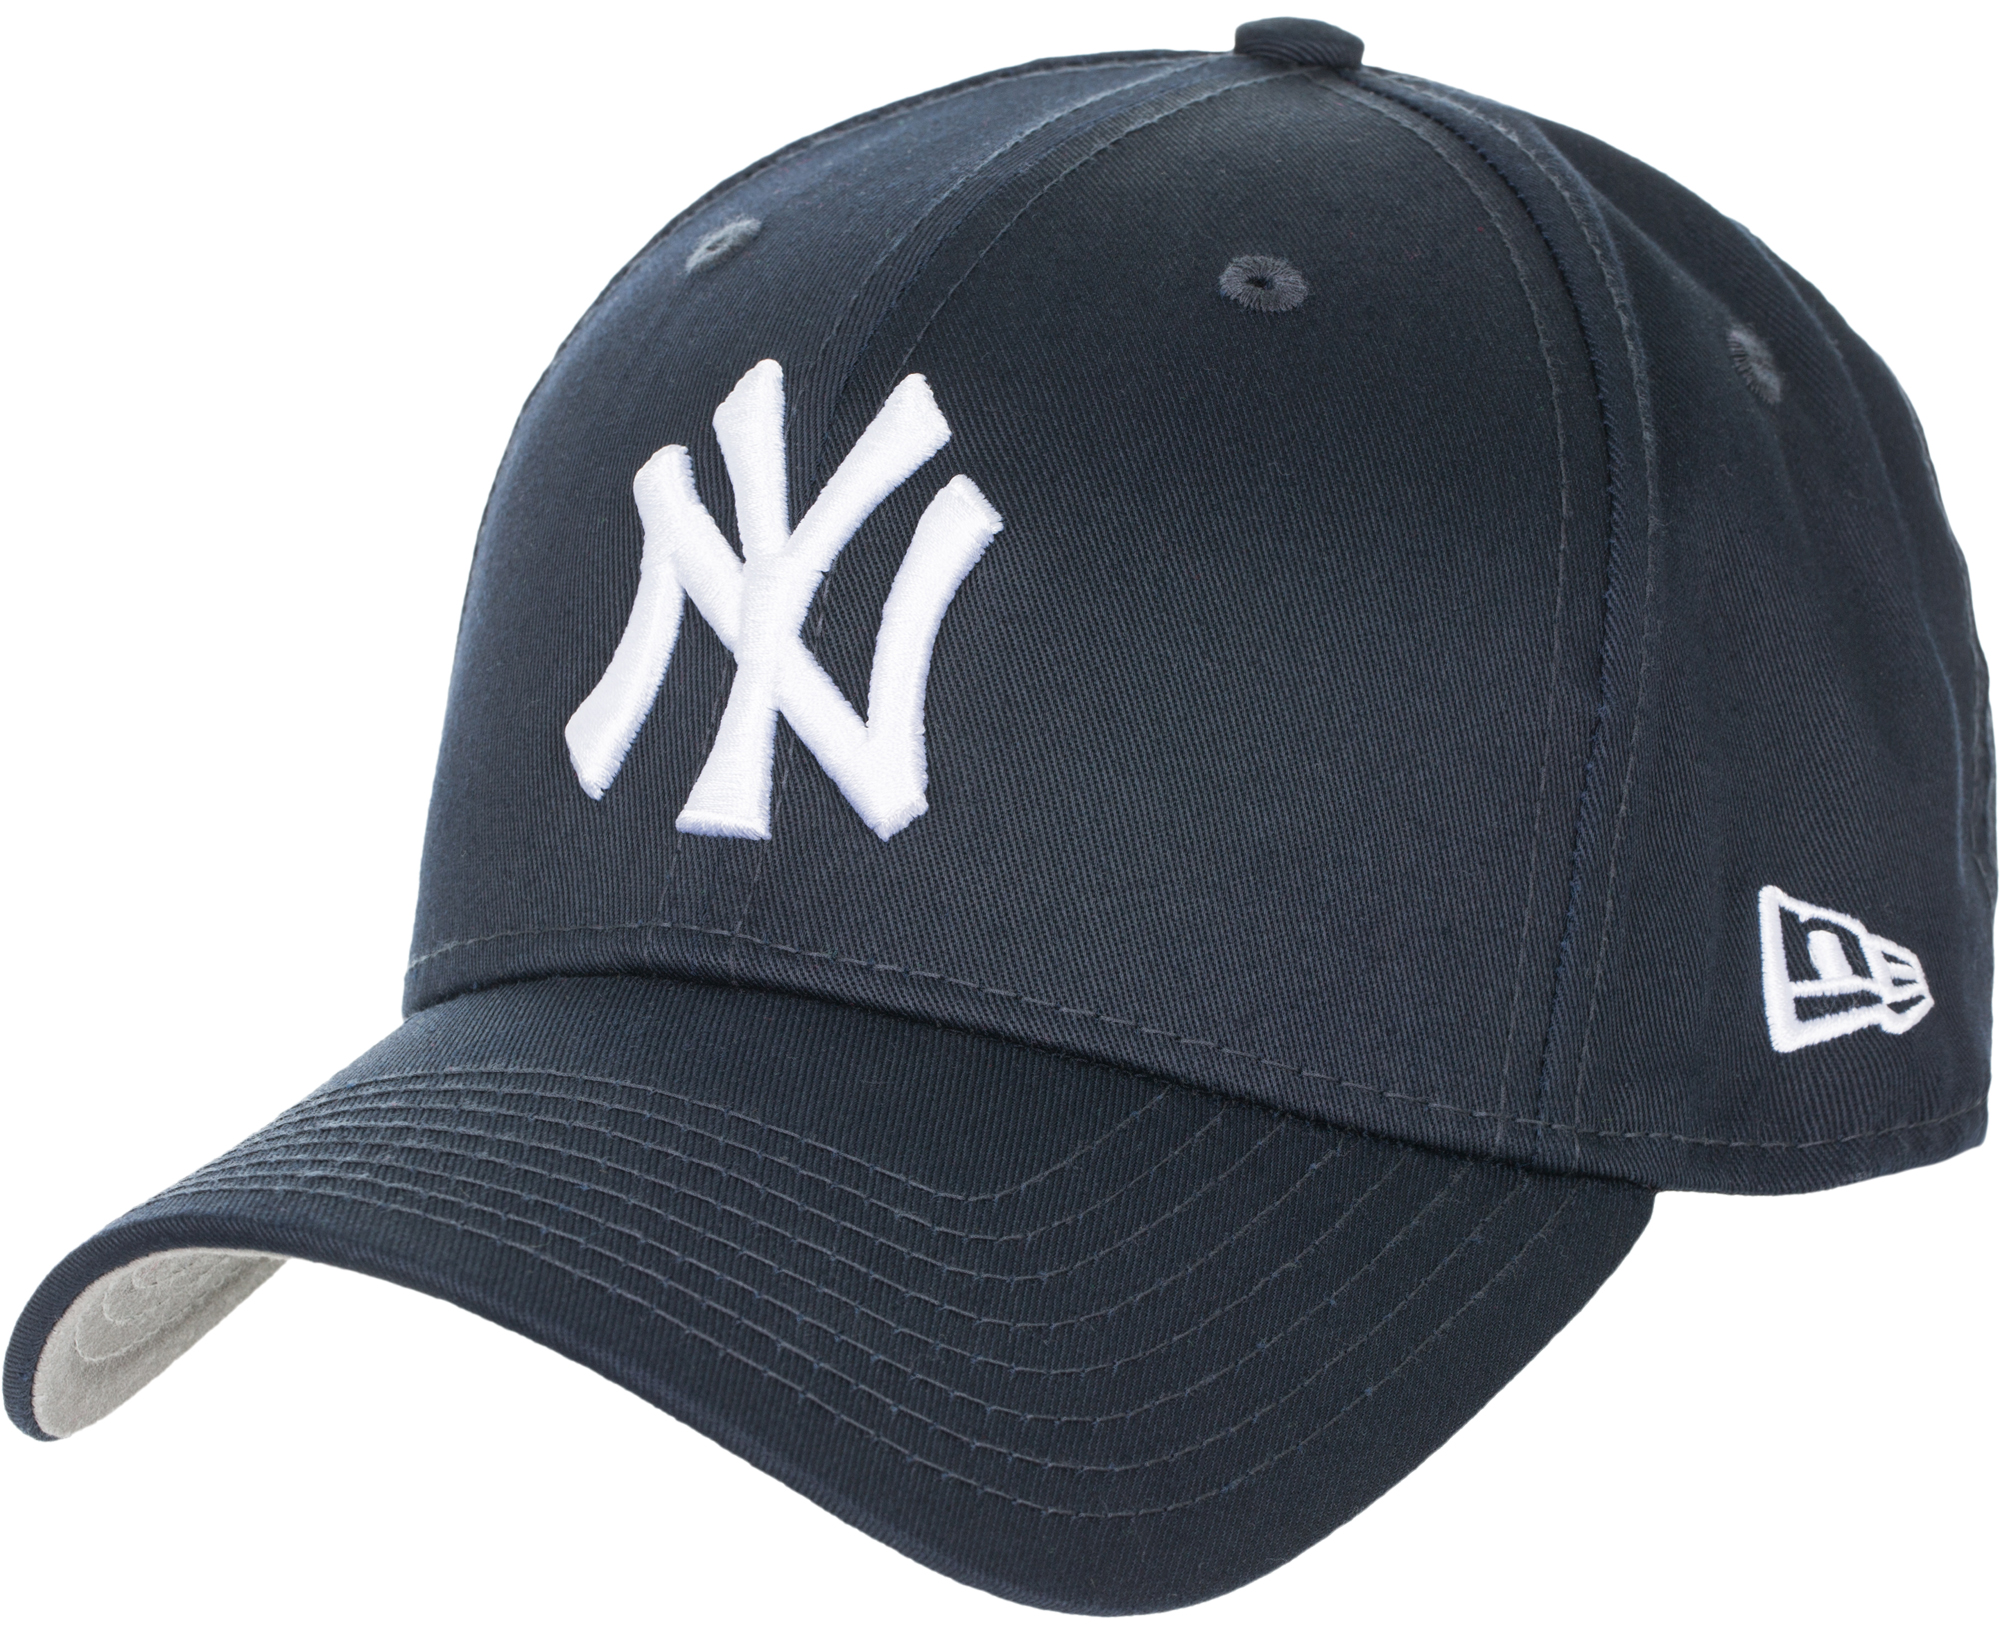 New Era Бейсболка New Era Sm Sp16 Entry 9Forty majorleaguebaseball mlb new york yankees nyy home yankee stadium 3d puzzle model paper